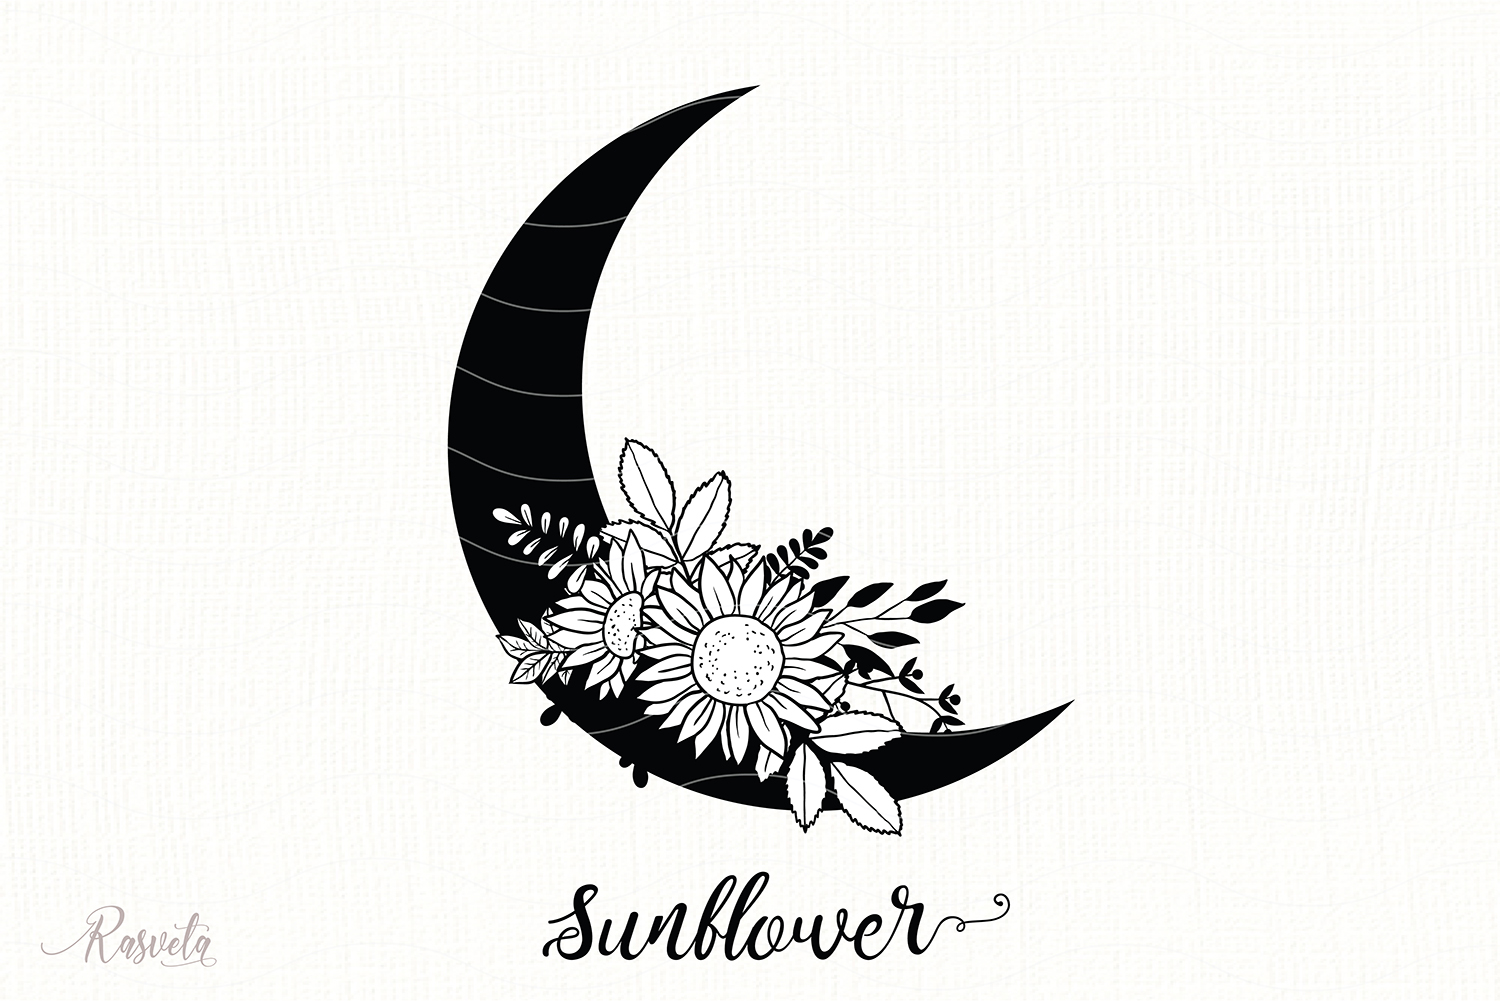 Silhouette Of The Moon With Flowers Graphic By Rasveta Creative Fabrica Browse our sunflower silhouette images, graphics, and designs from +79.322 free vectors graphics. silhouette of the moon with flowers